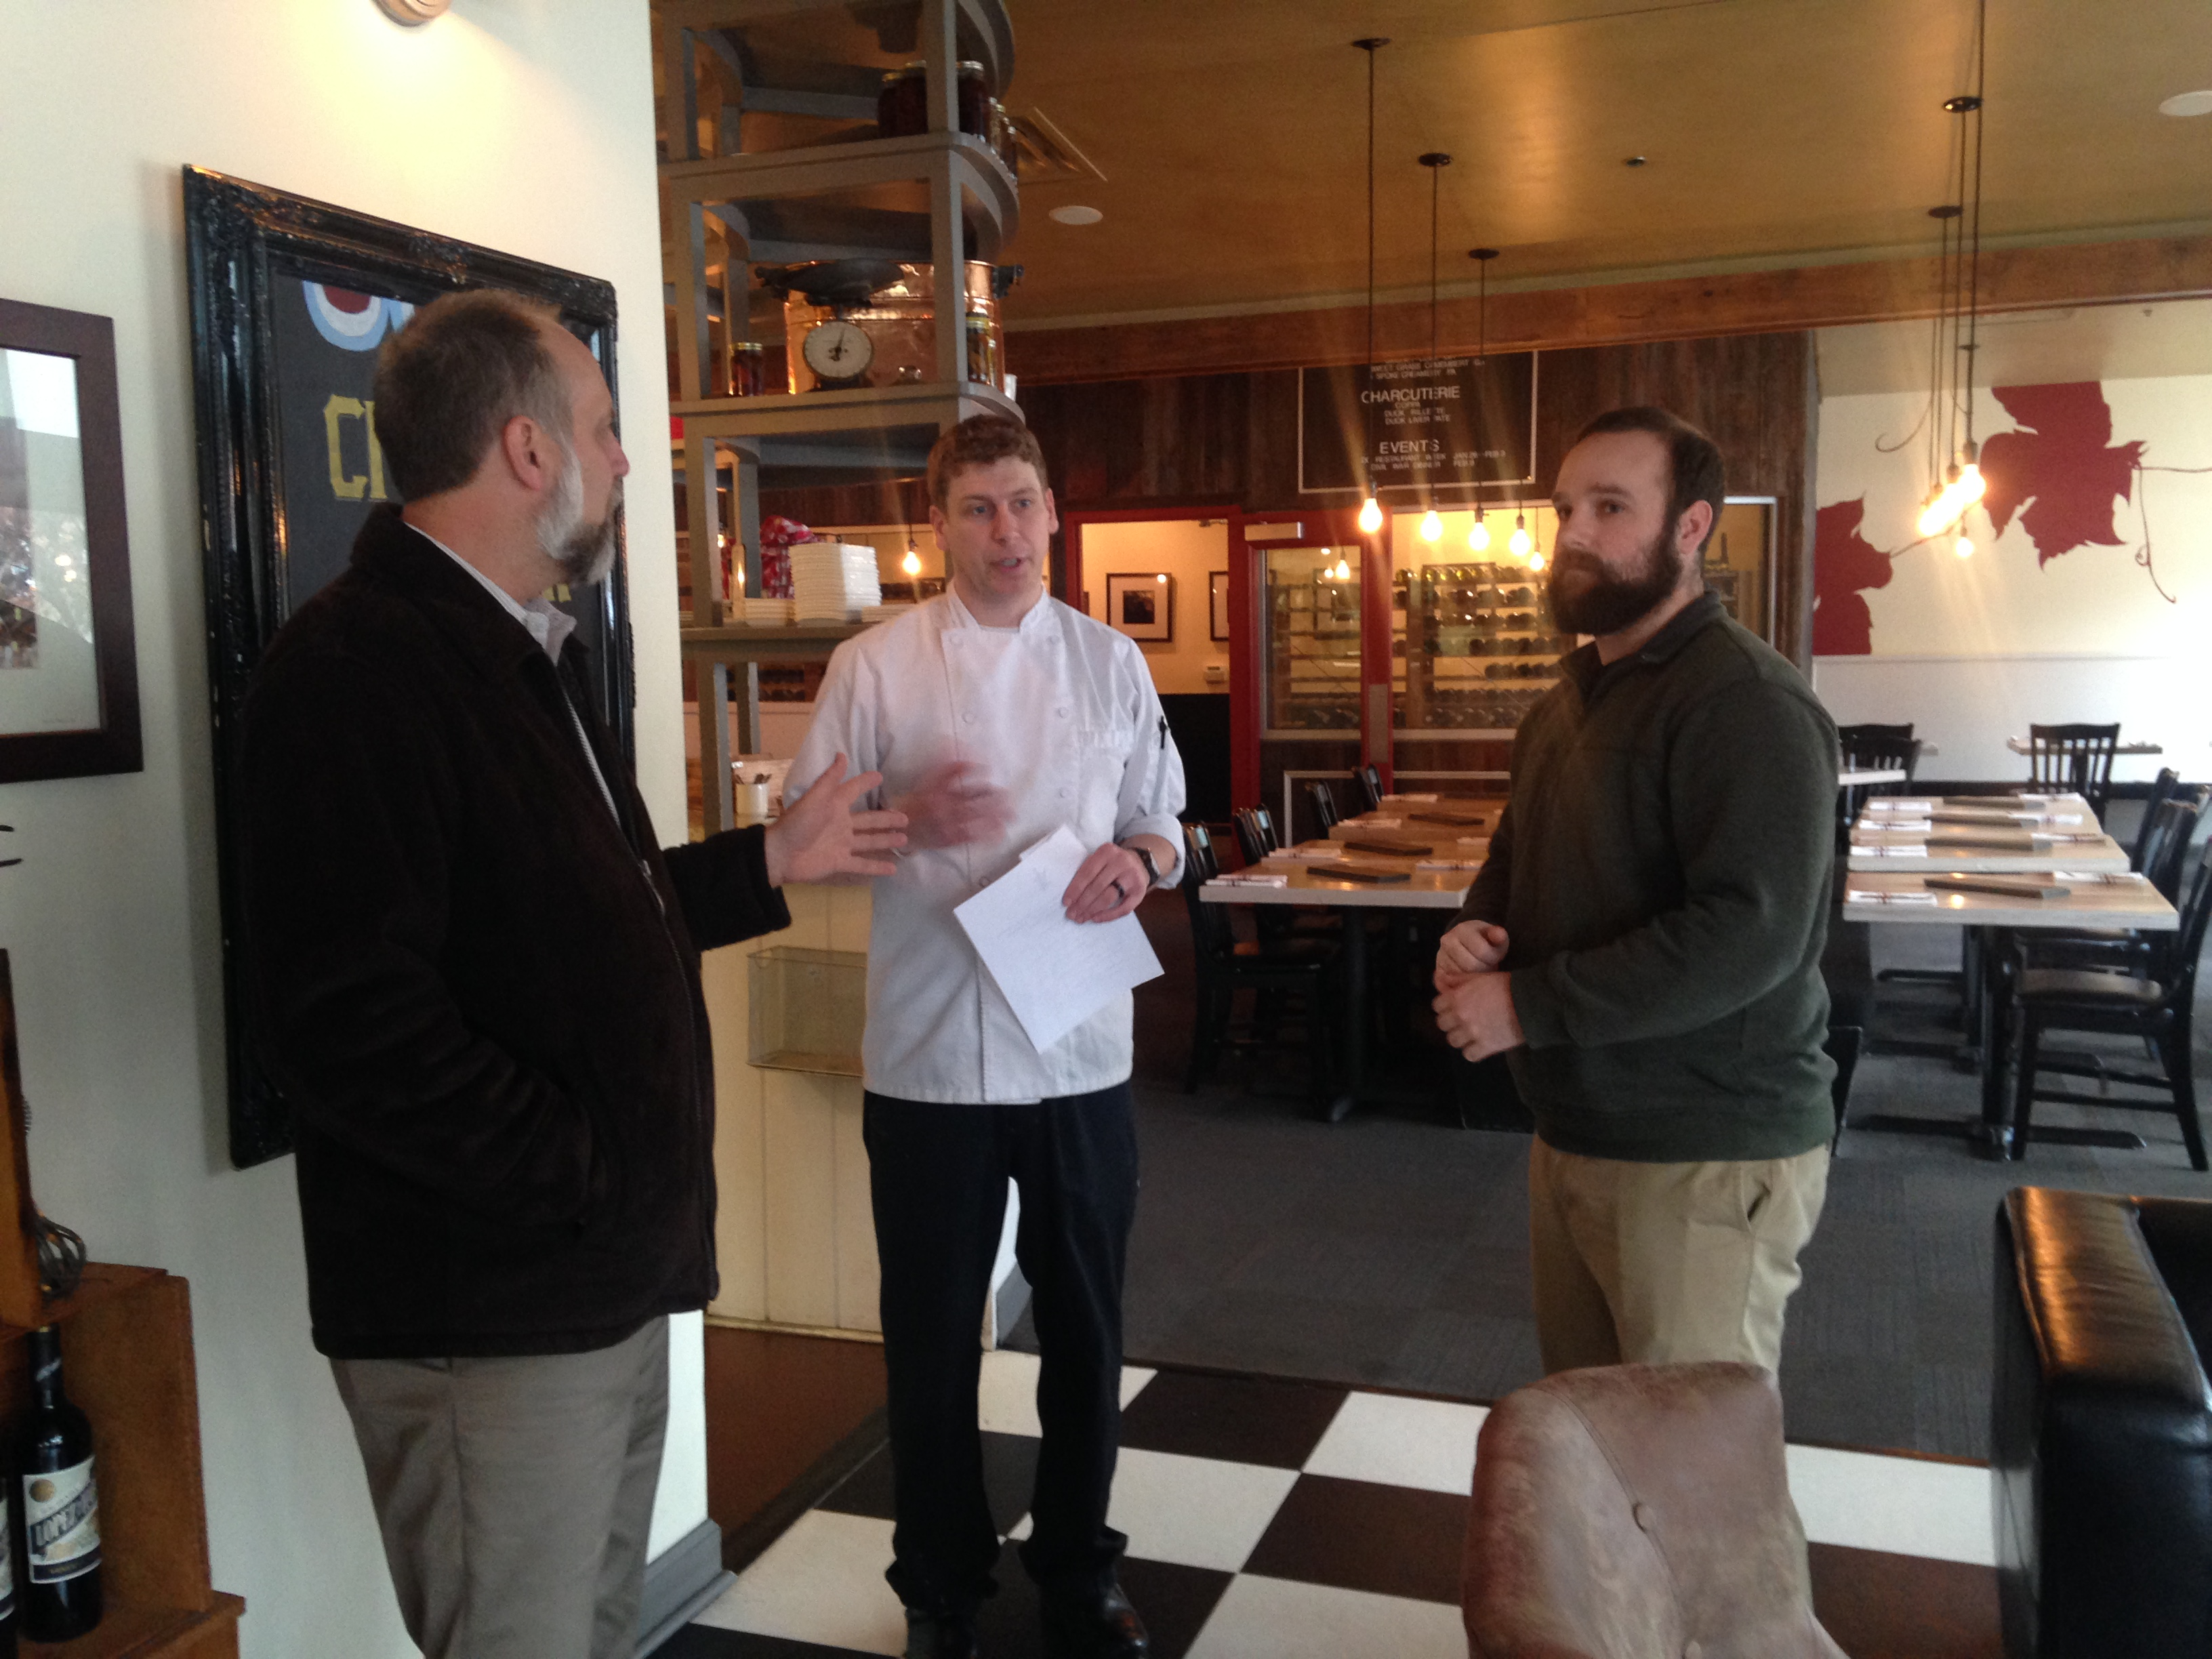 For Civil War menu, local chef inspired by unlikely muse: hospital food